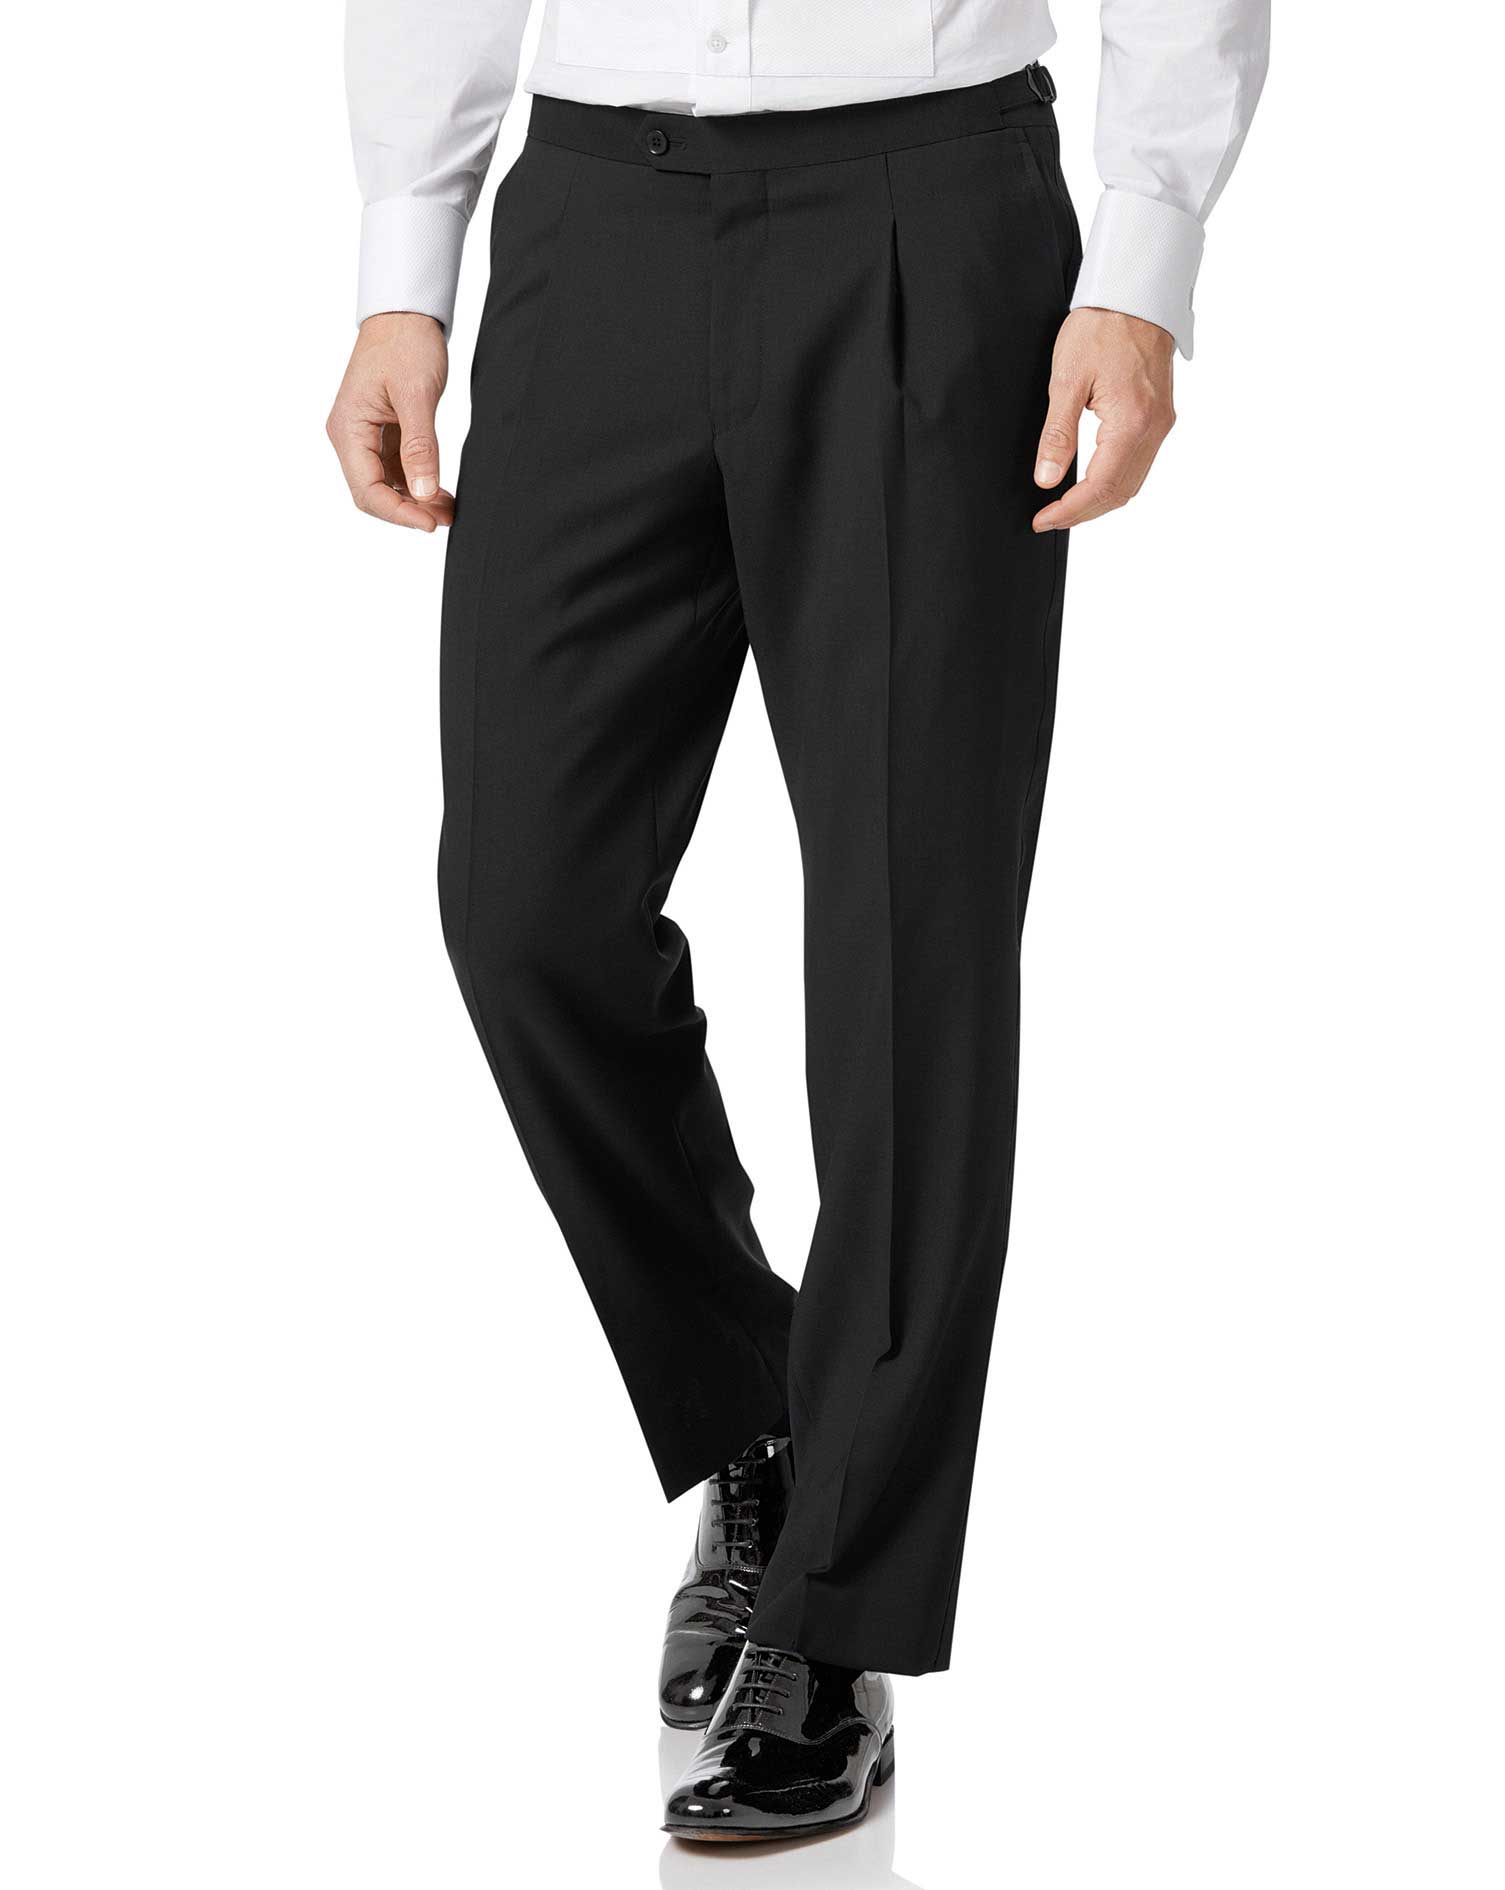 Black Classic Fit Tuxedo Trousers Size W34 L34 by Charles Tyrwhitt